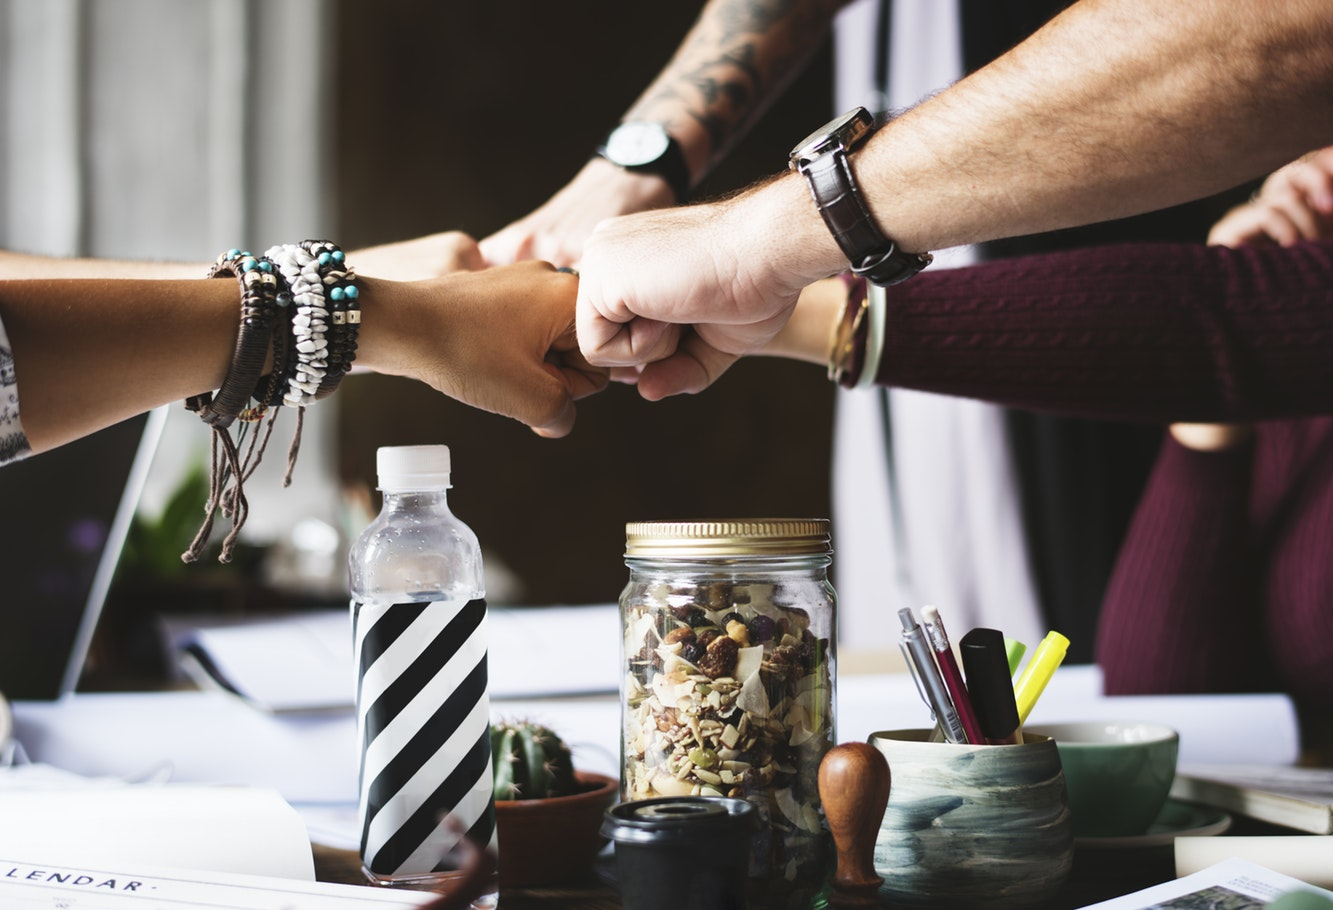 Learning Culture pays off for Employers and Employees